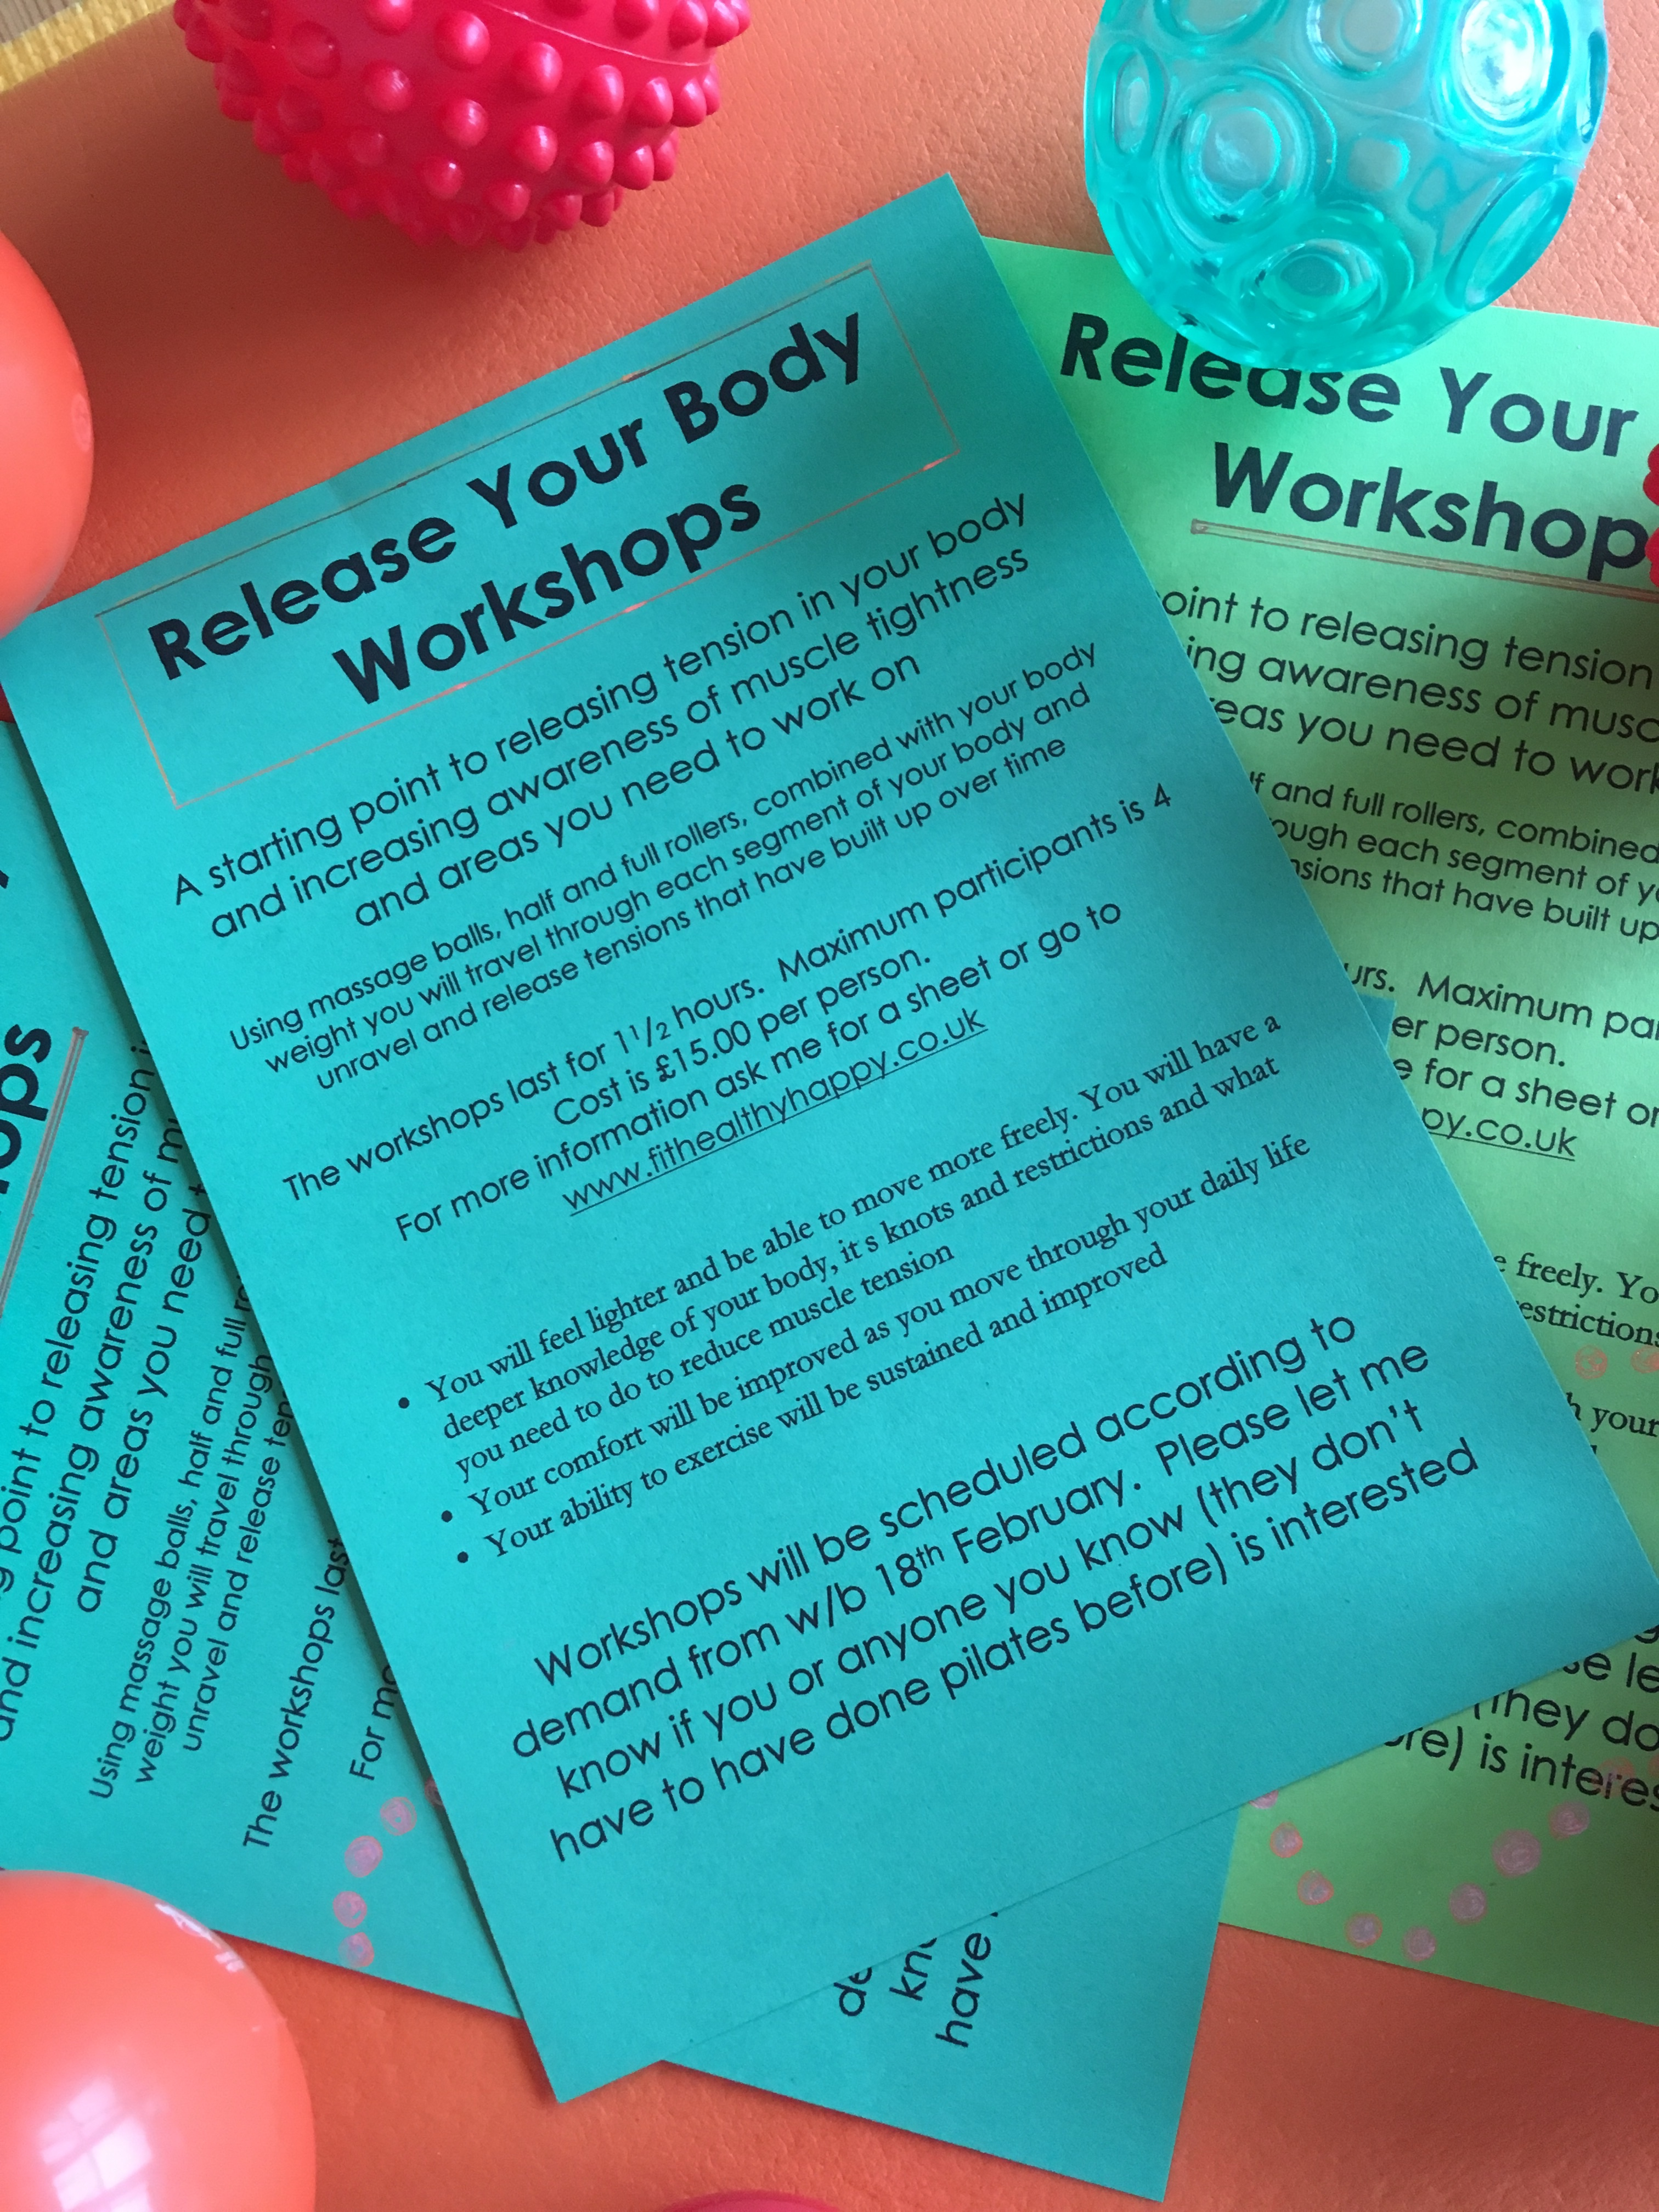 Release your body workshops